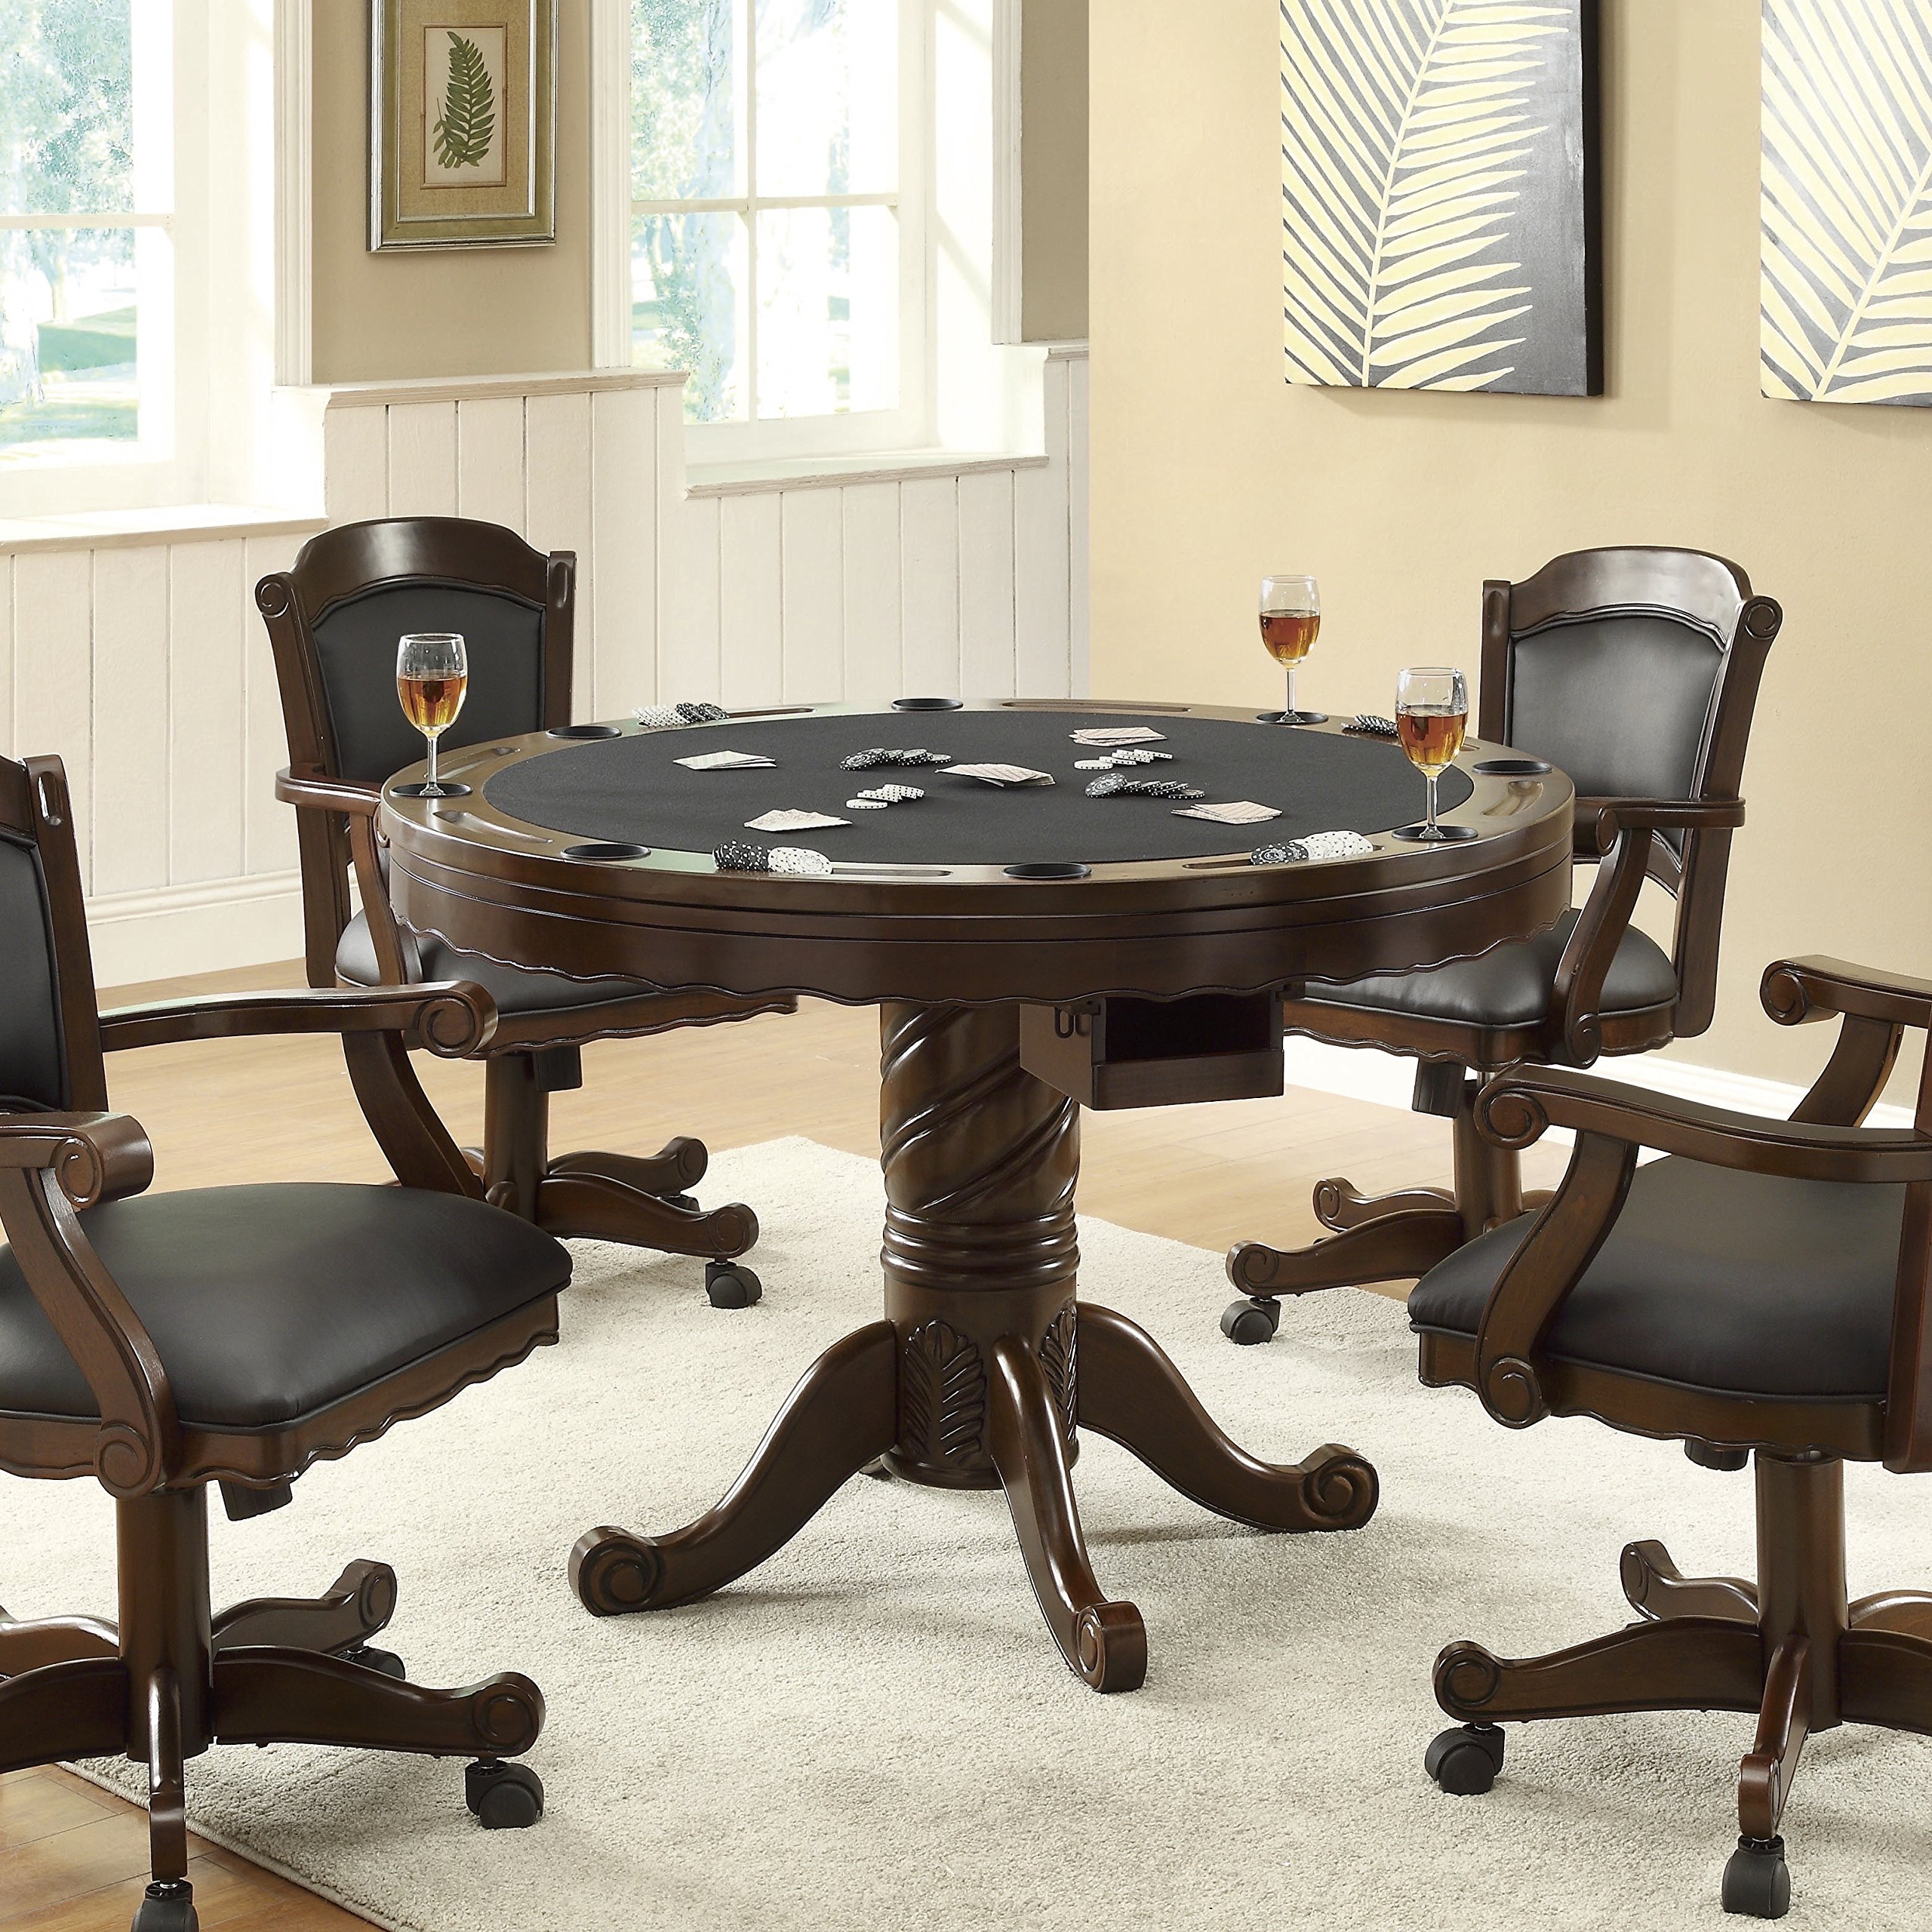 Turk 3-in-1 Round Pedestal Game Table Tobacco by Coaster Home Furnishings